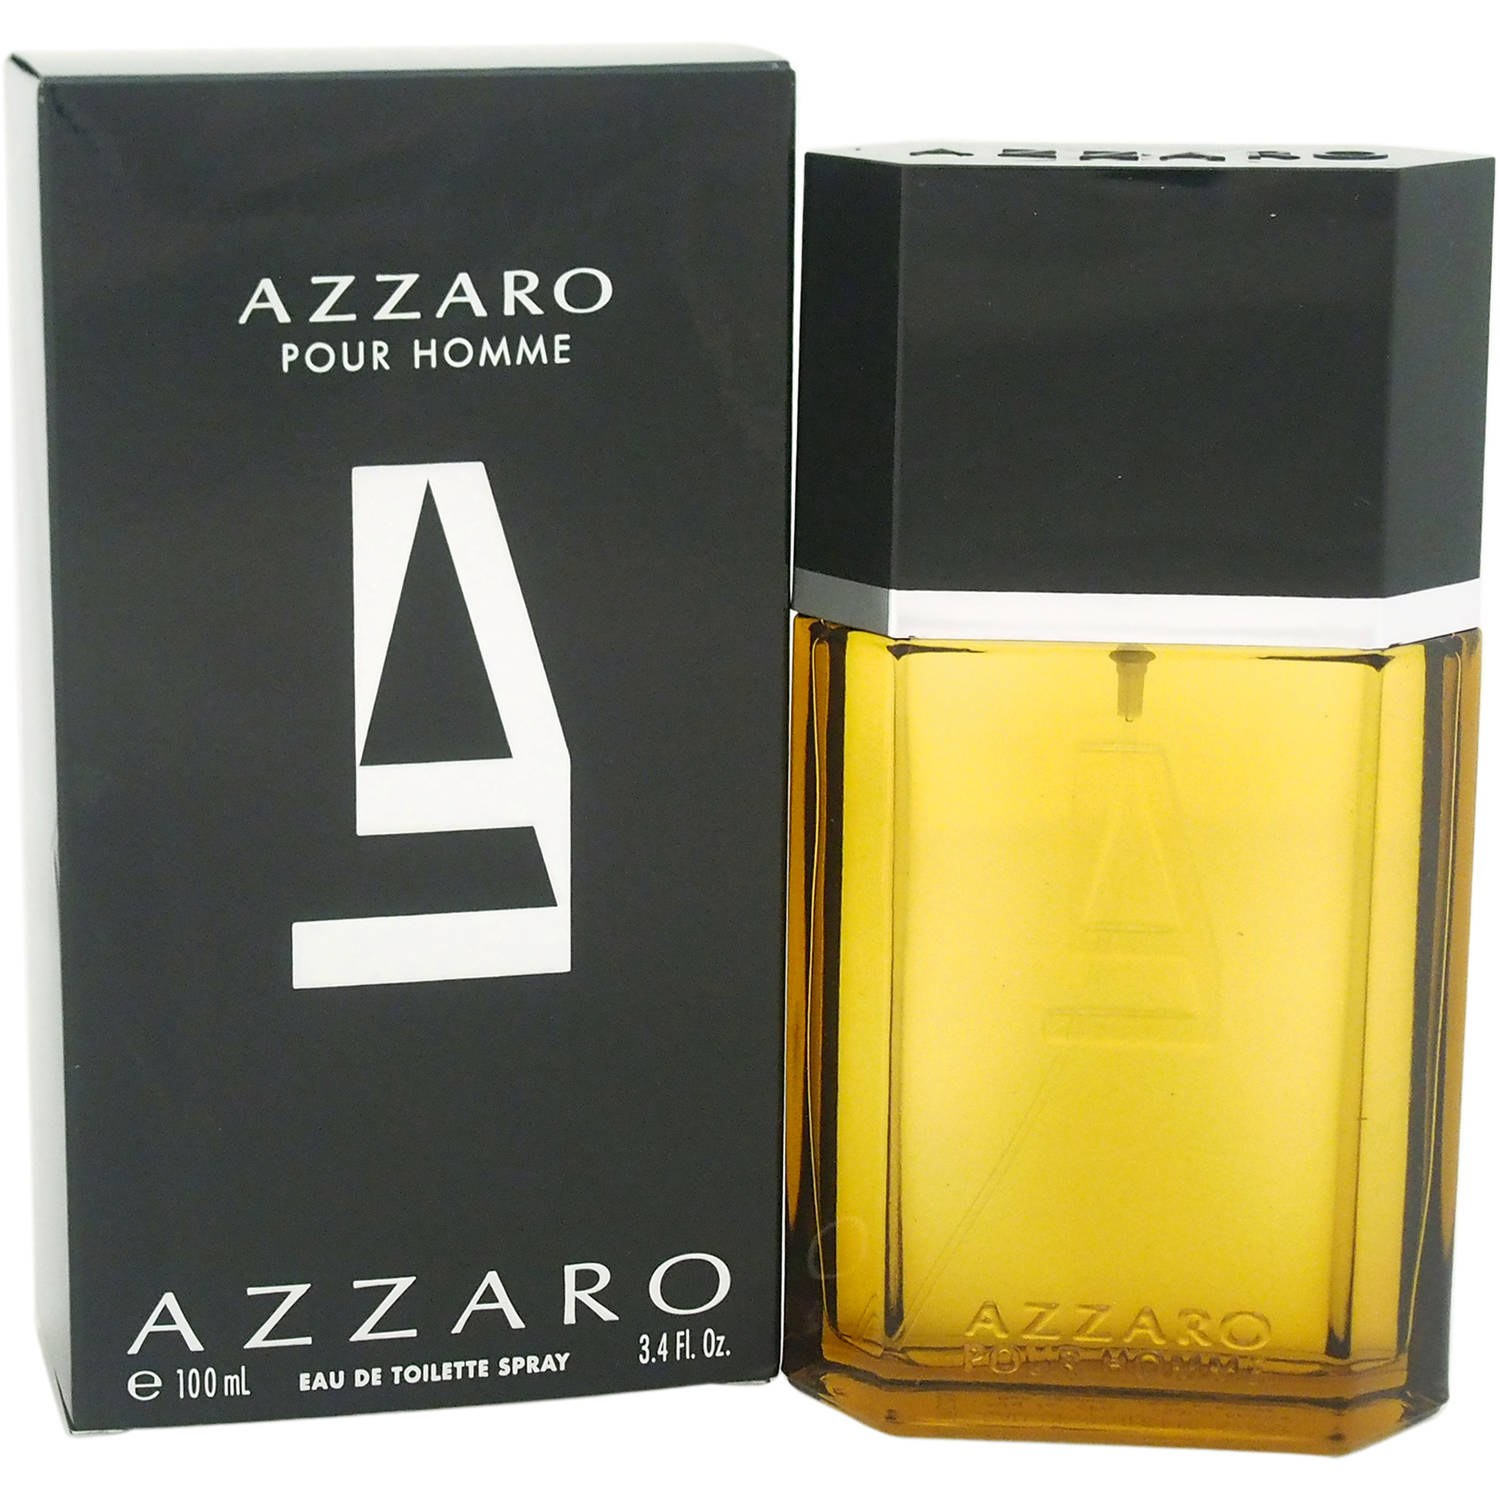 Loris Azzaro for Men Eau de Toilette Spray, 3.4 oz